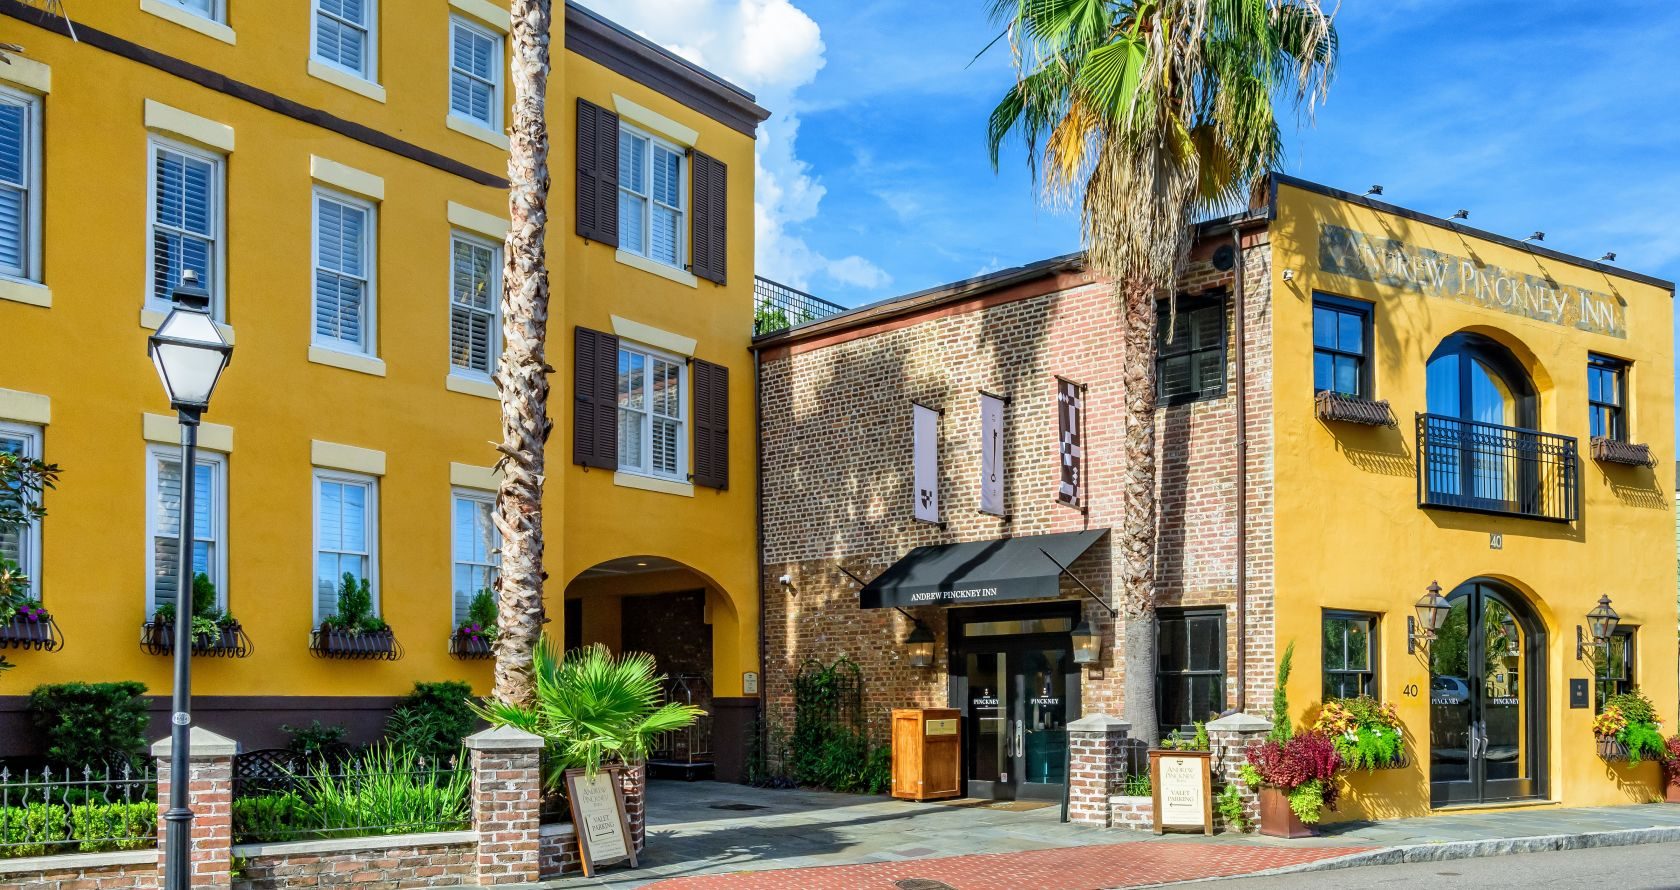 Discover Our Historic Charleston Inn